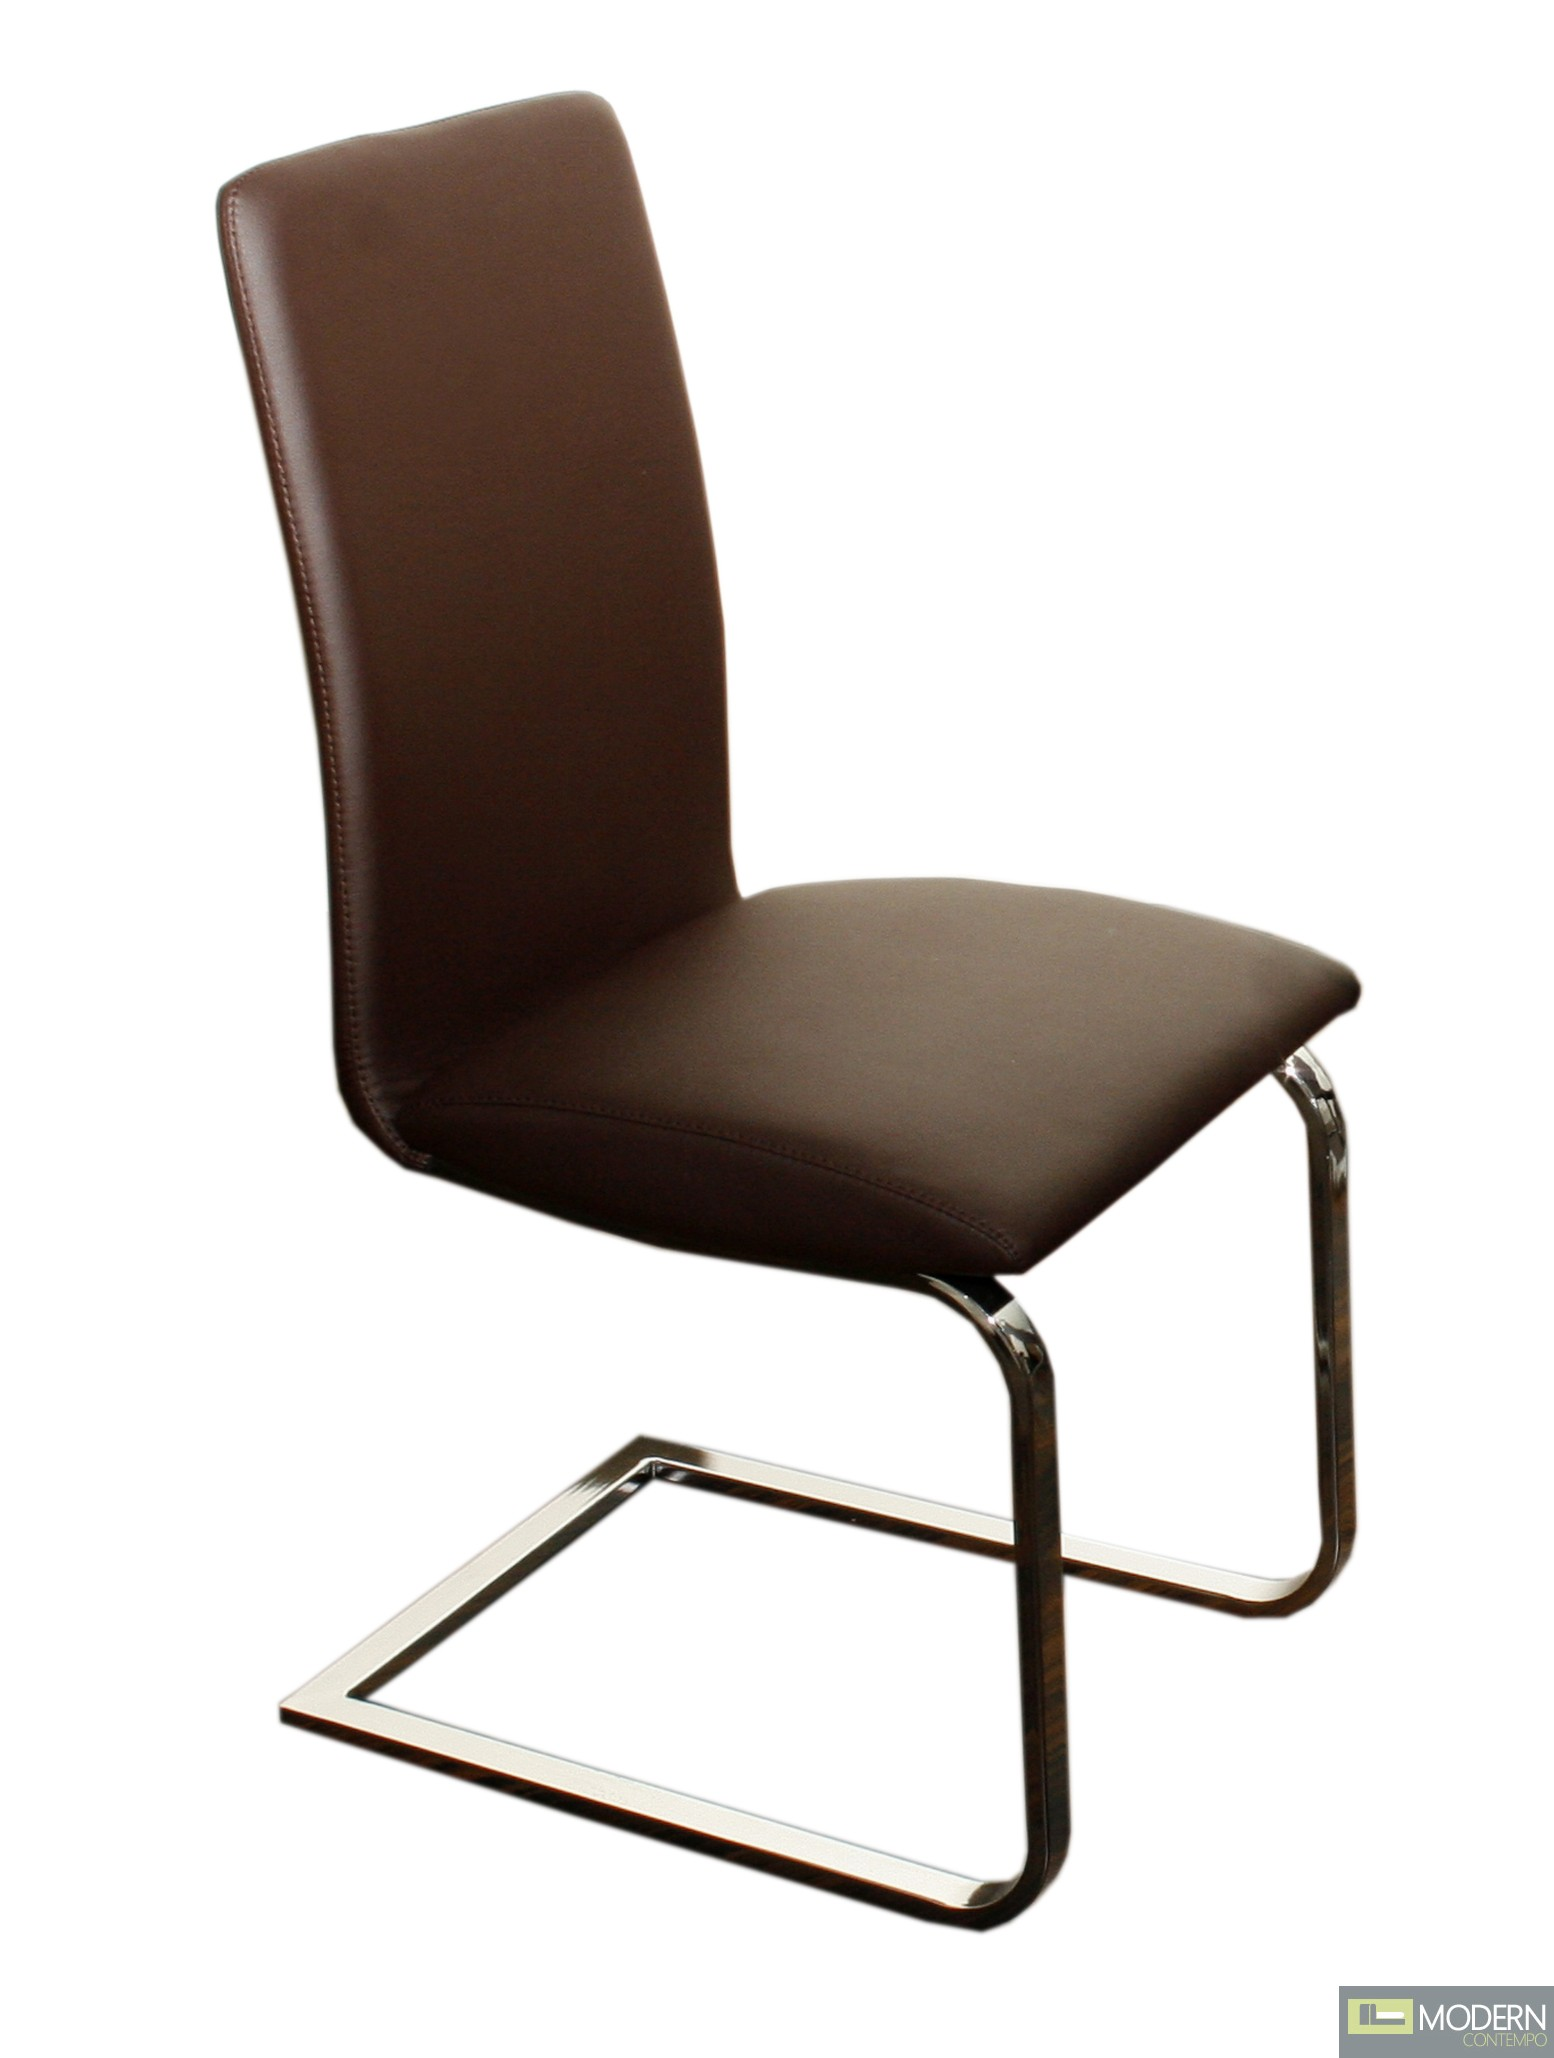 Murano - Modern Leather Dining Chair